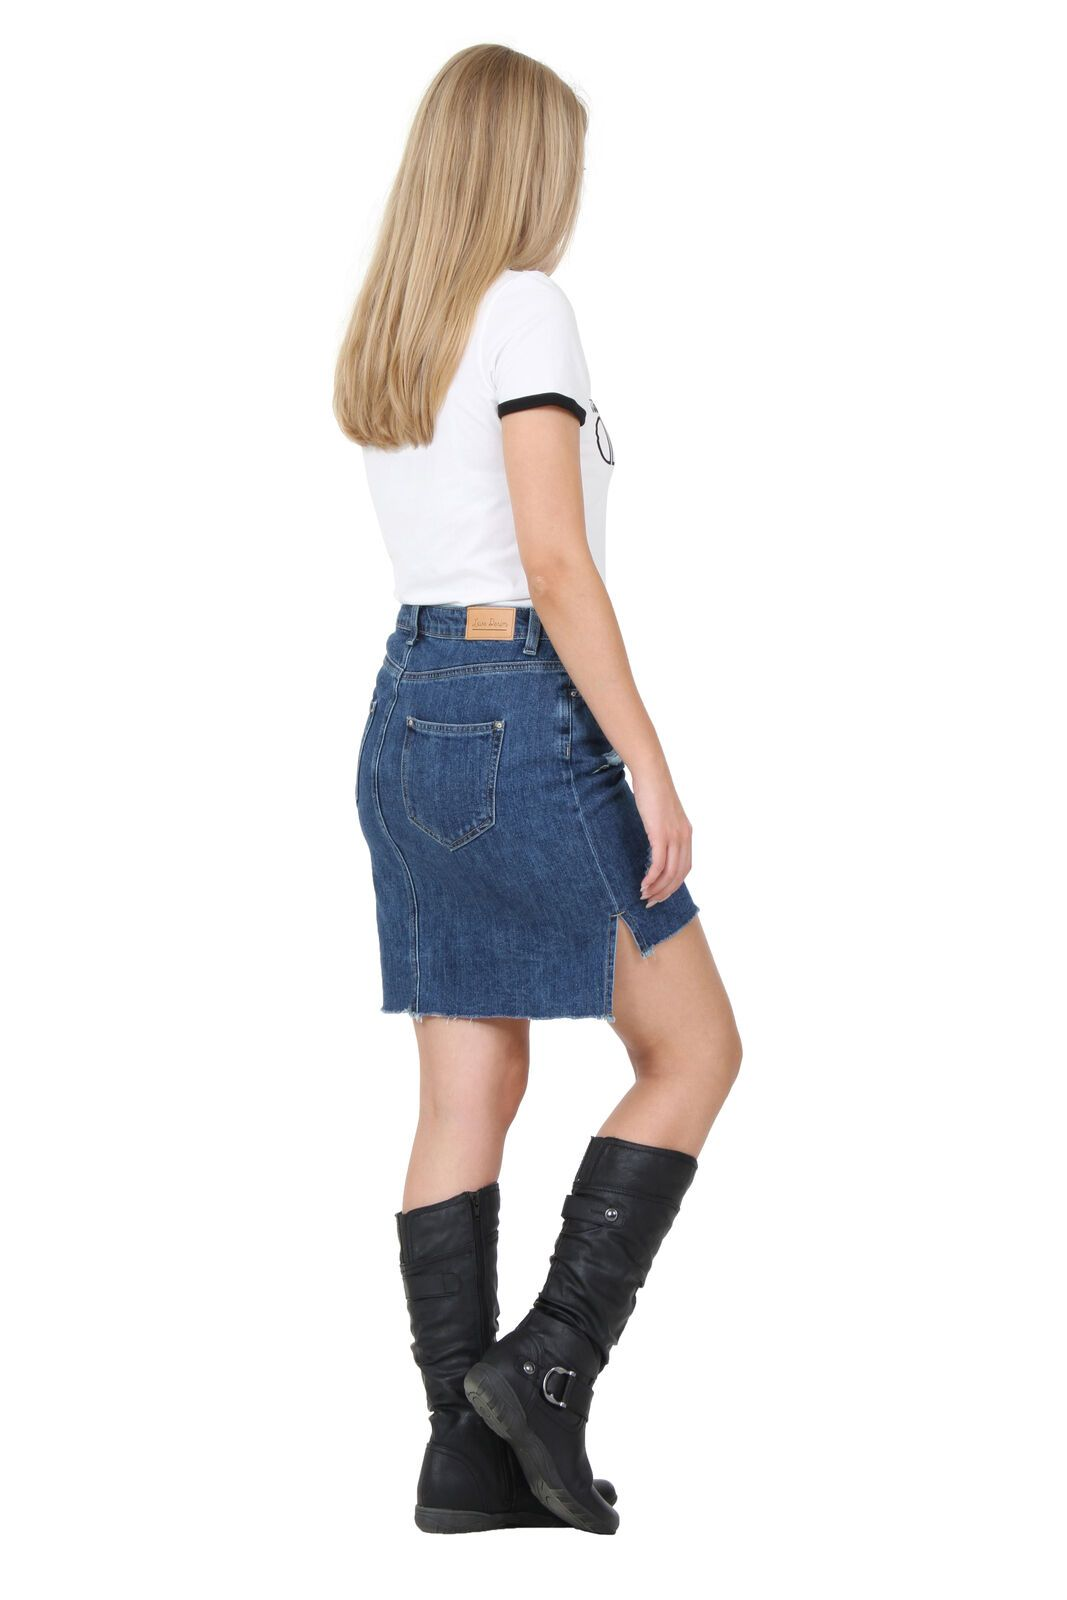 Angled back-side view wearing short denim skirt, clearly illustrating longer back and shorter front.